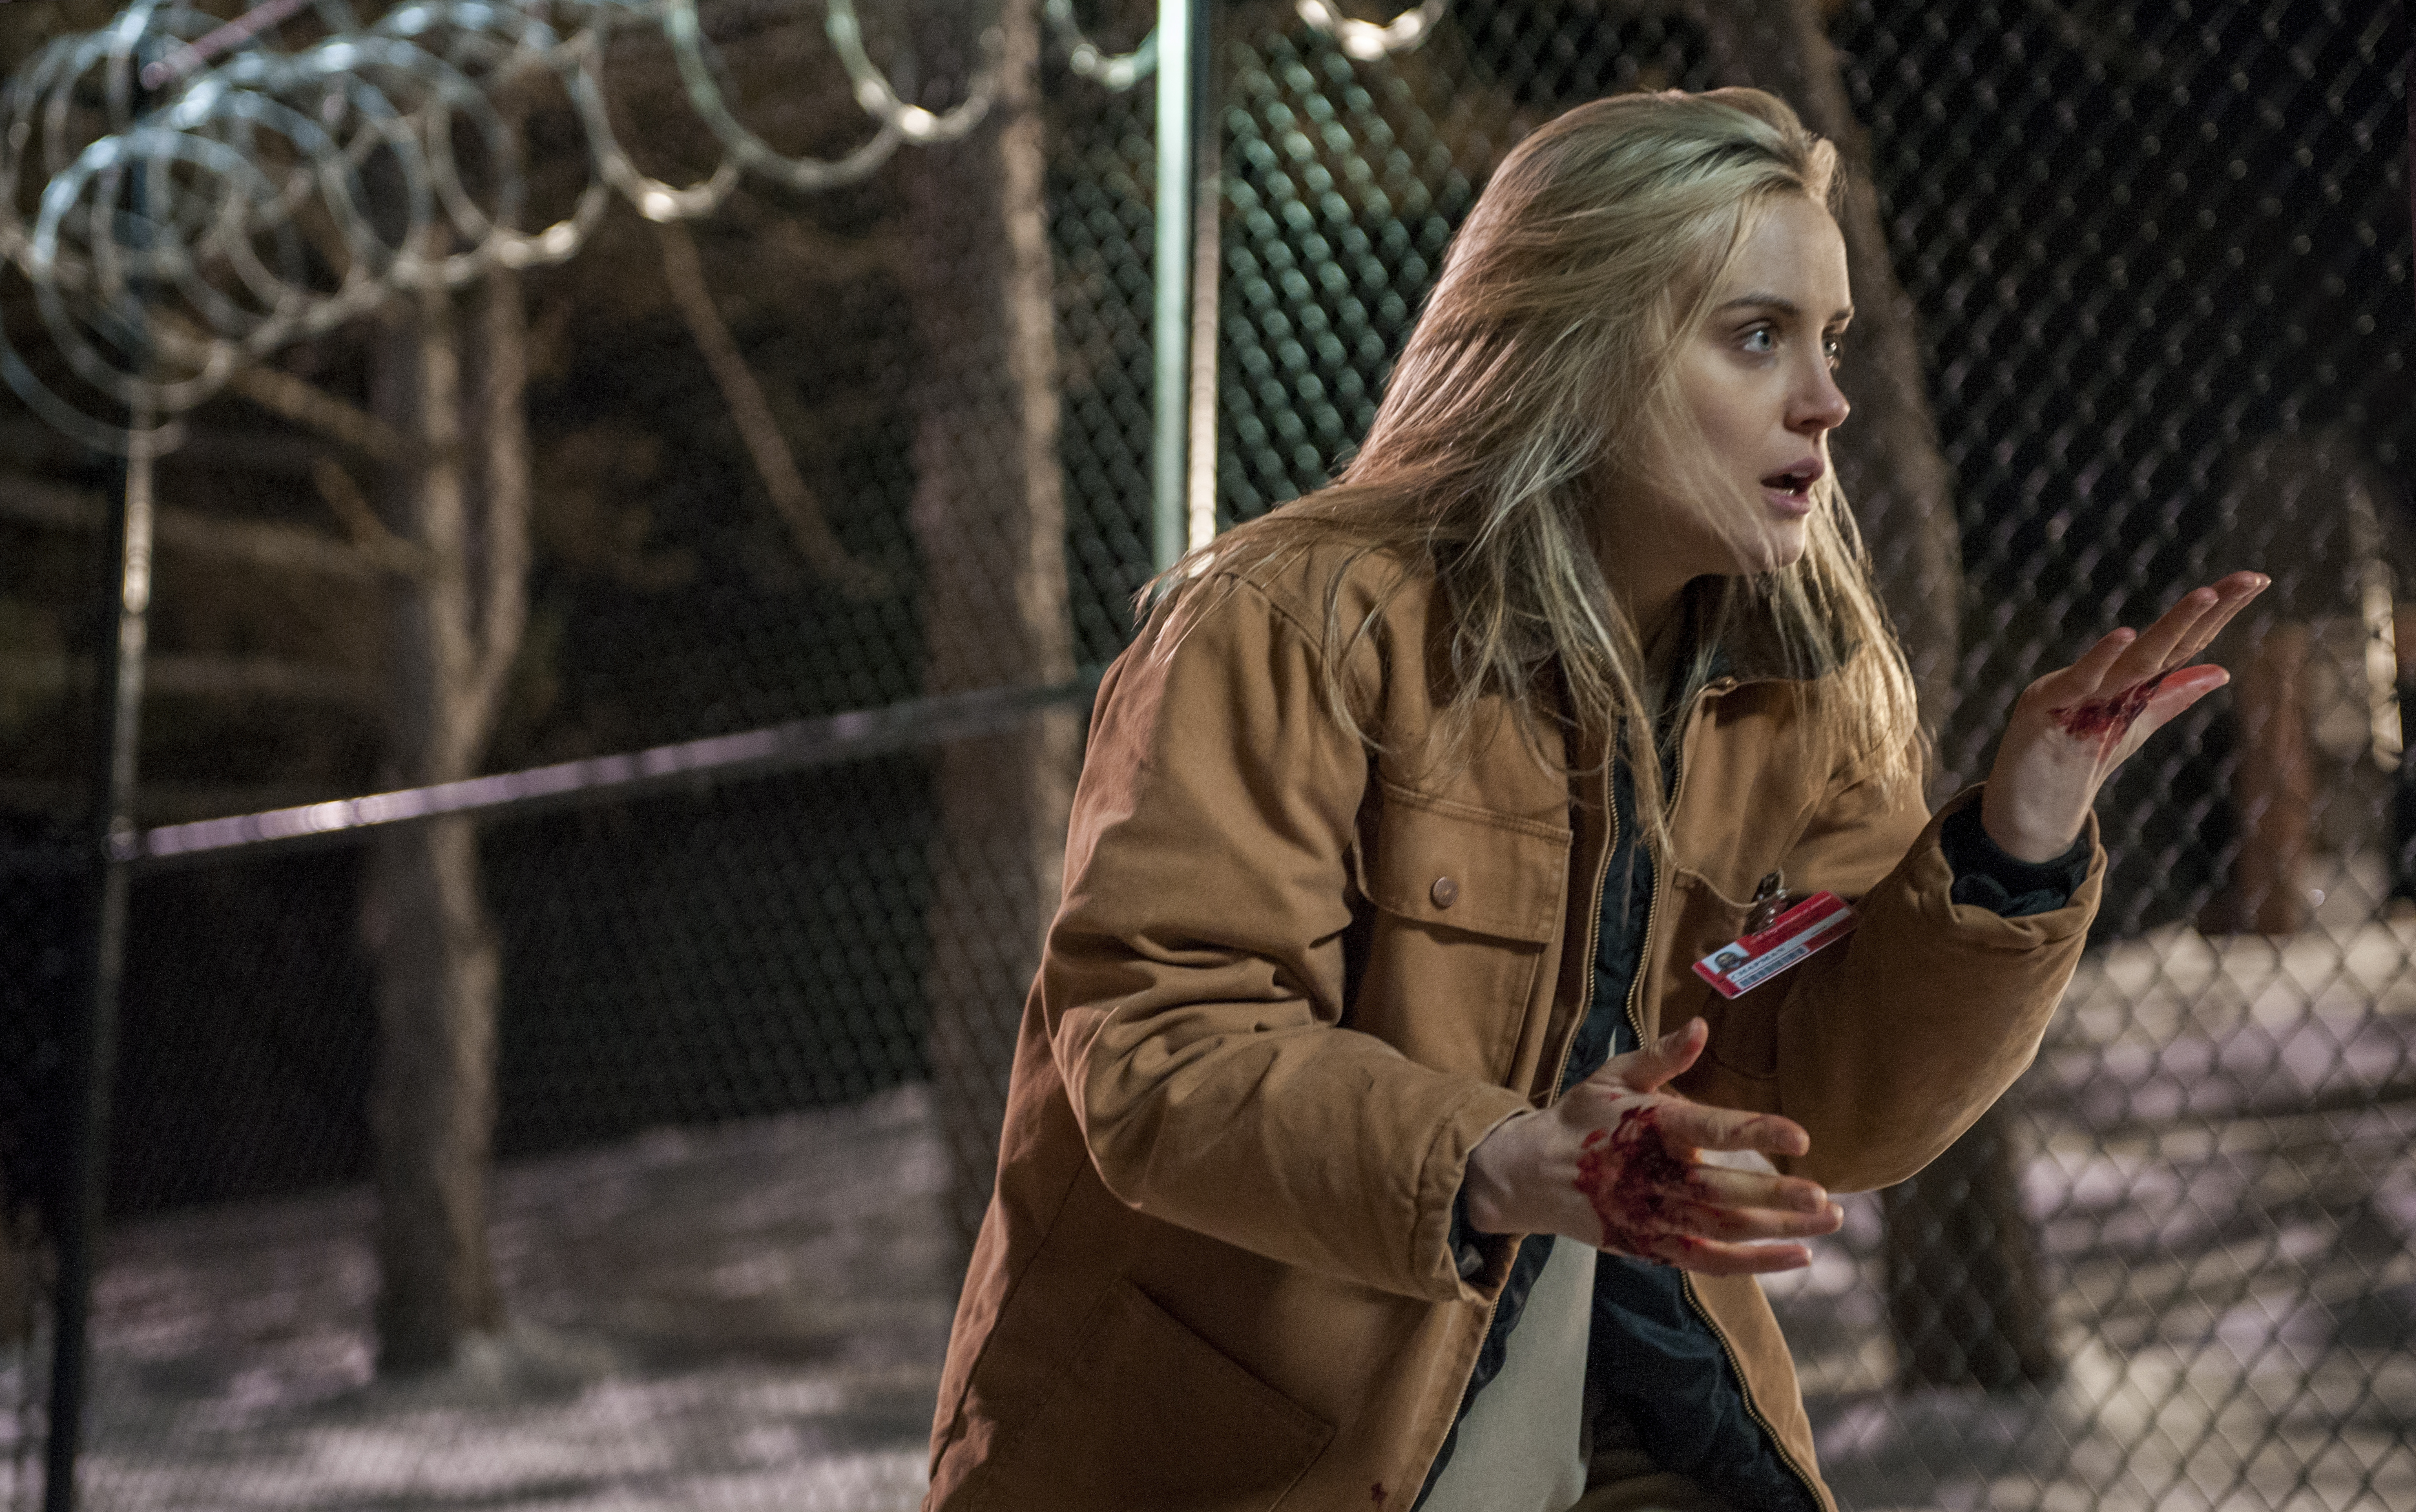 Taylor Schilling in a scene from Orange is the New Black